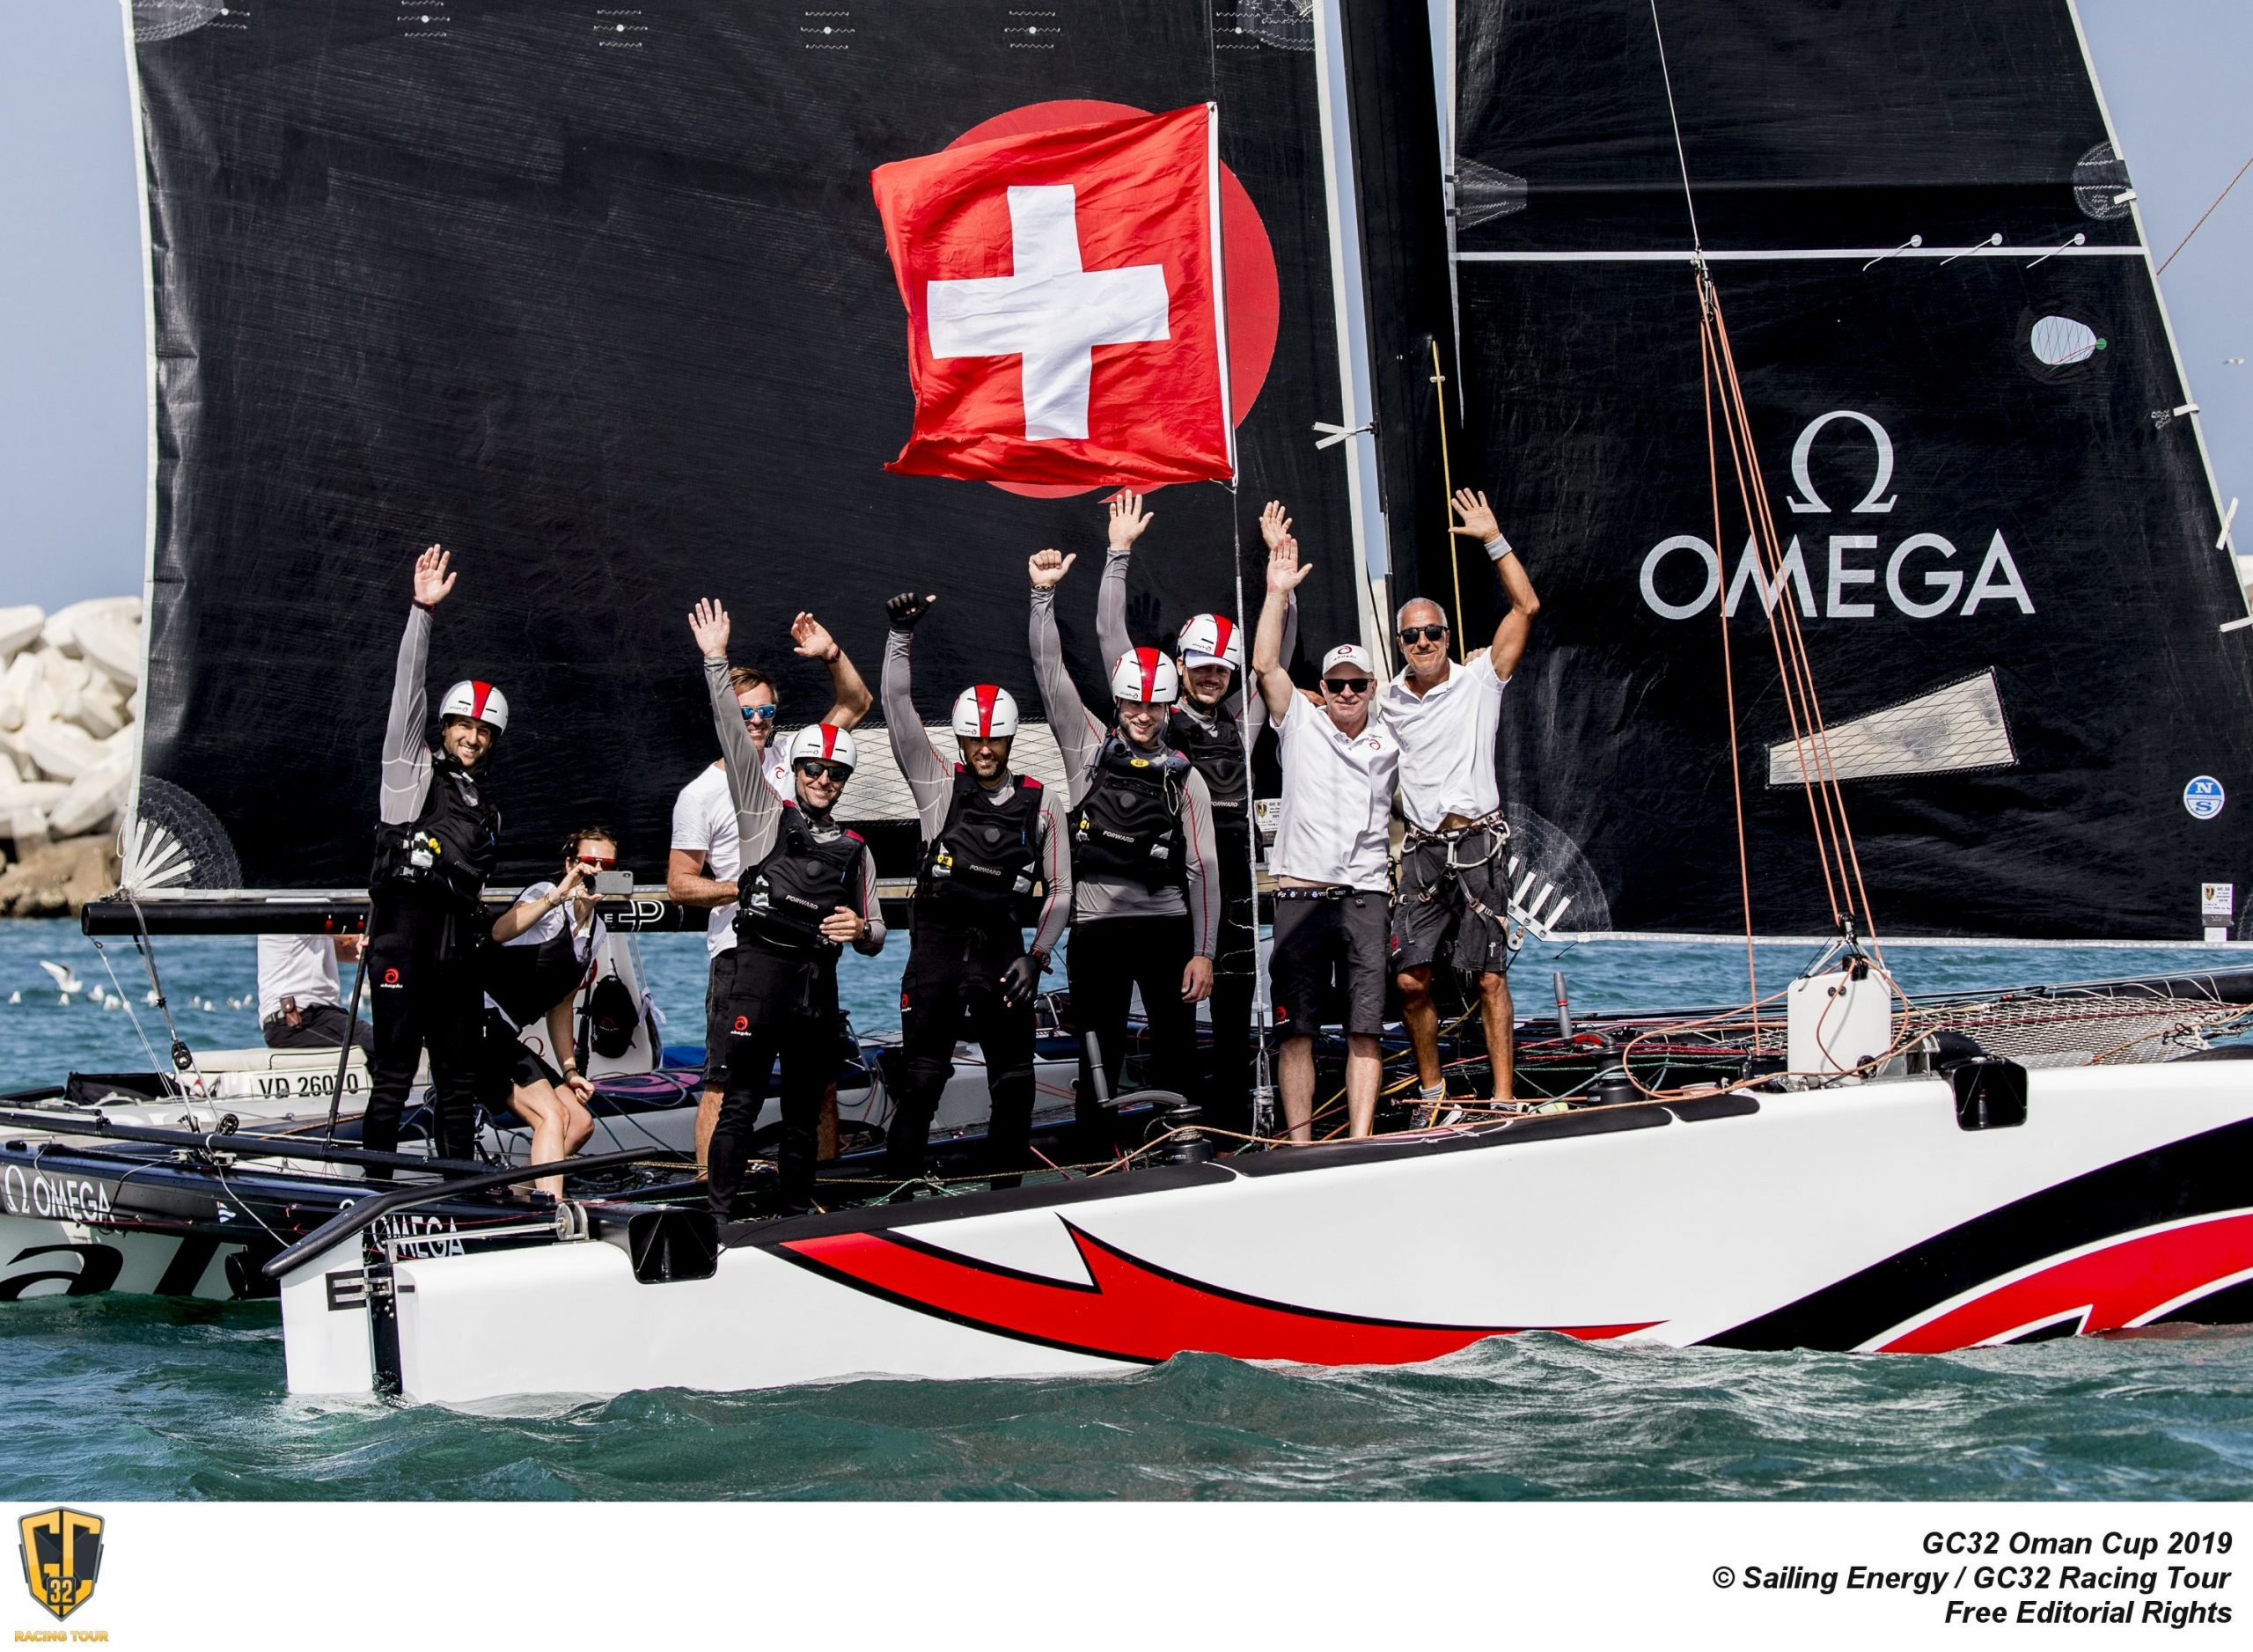 We are the champions - Sailing Energy pic